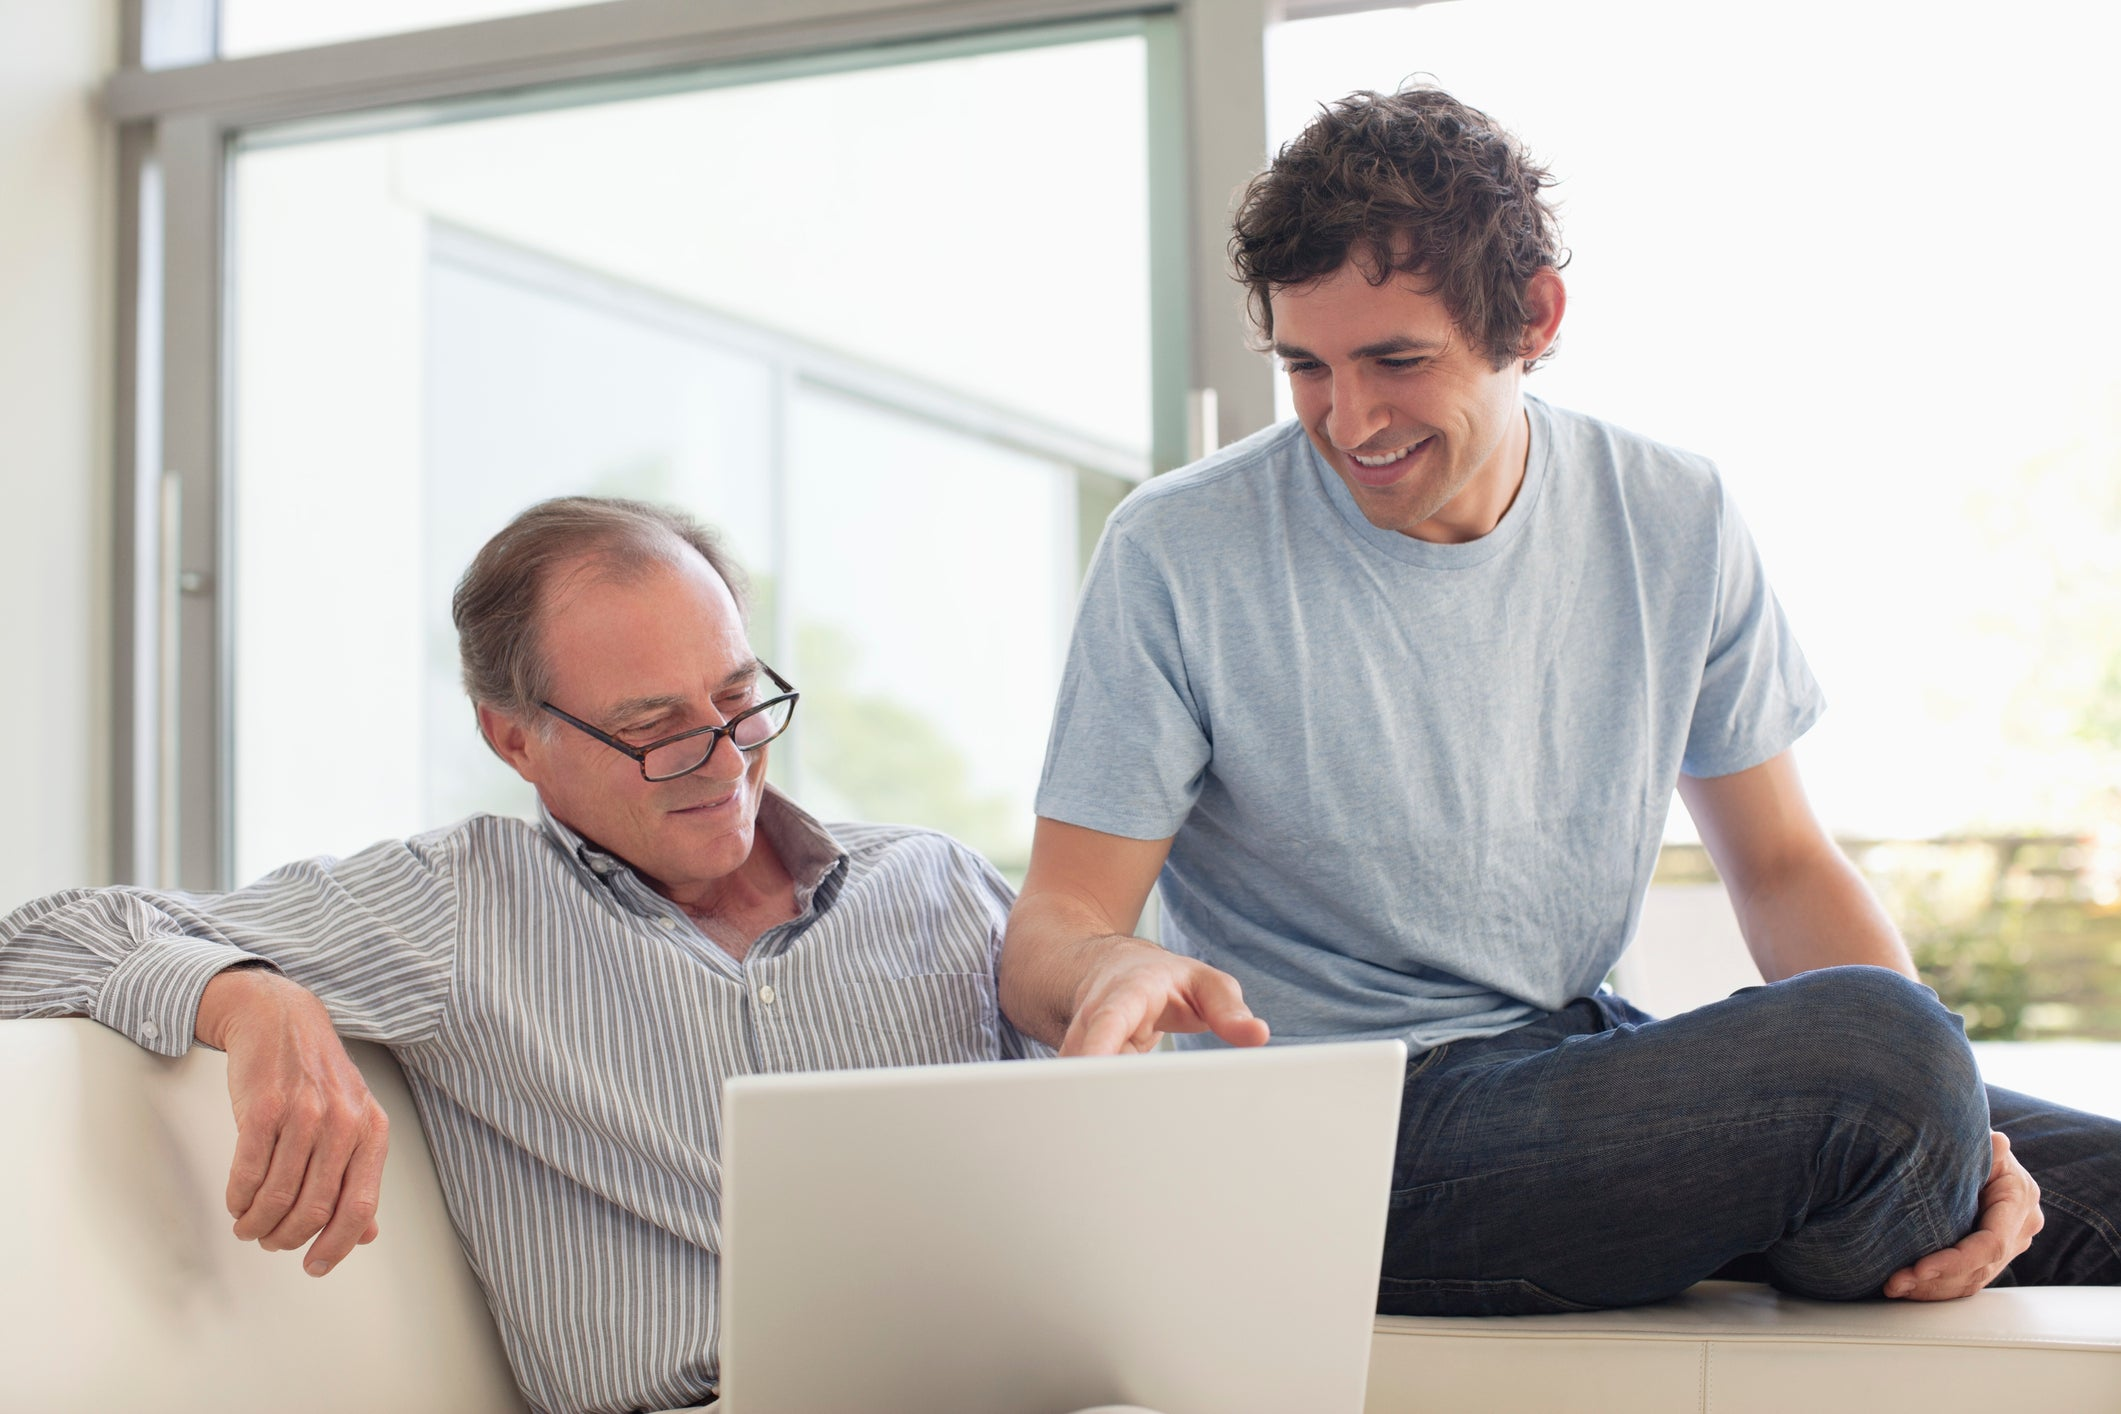 Father and son in front of a laptop.